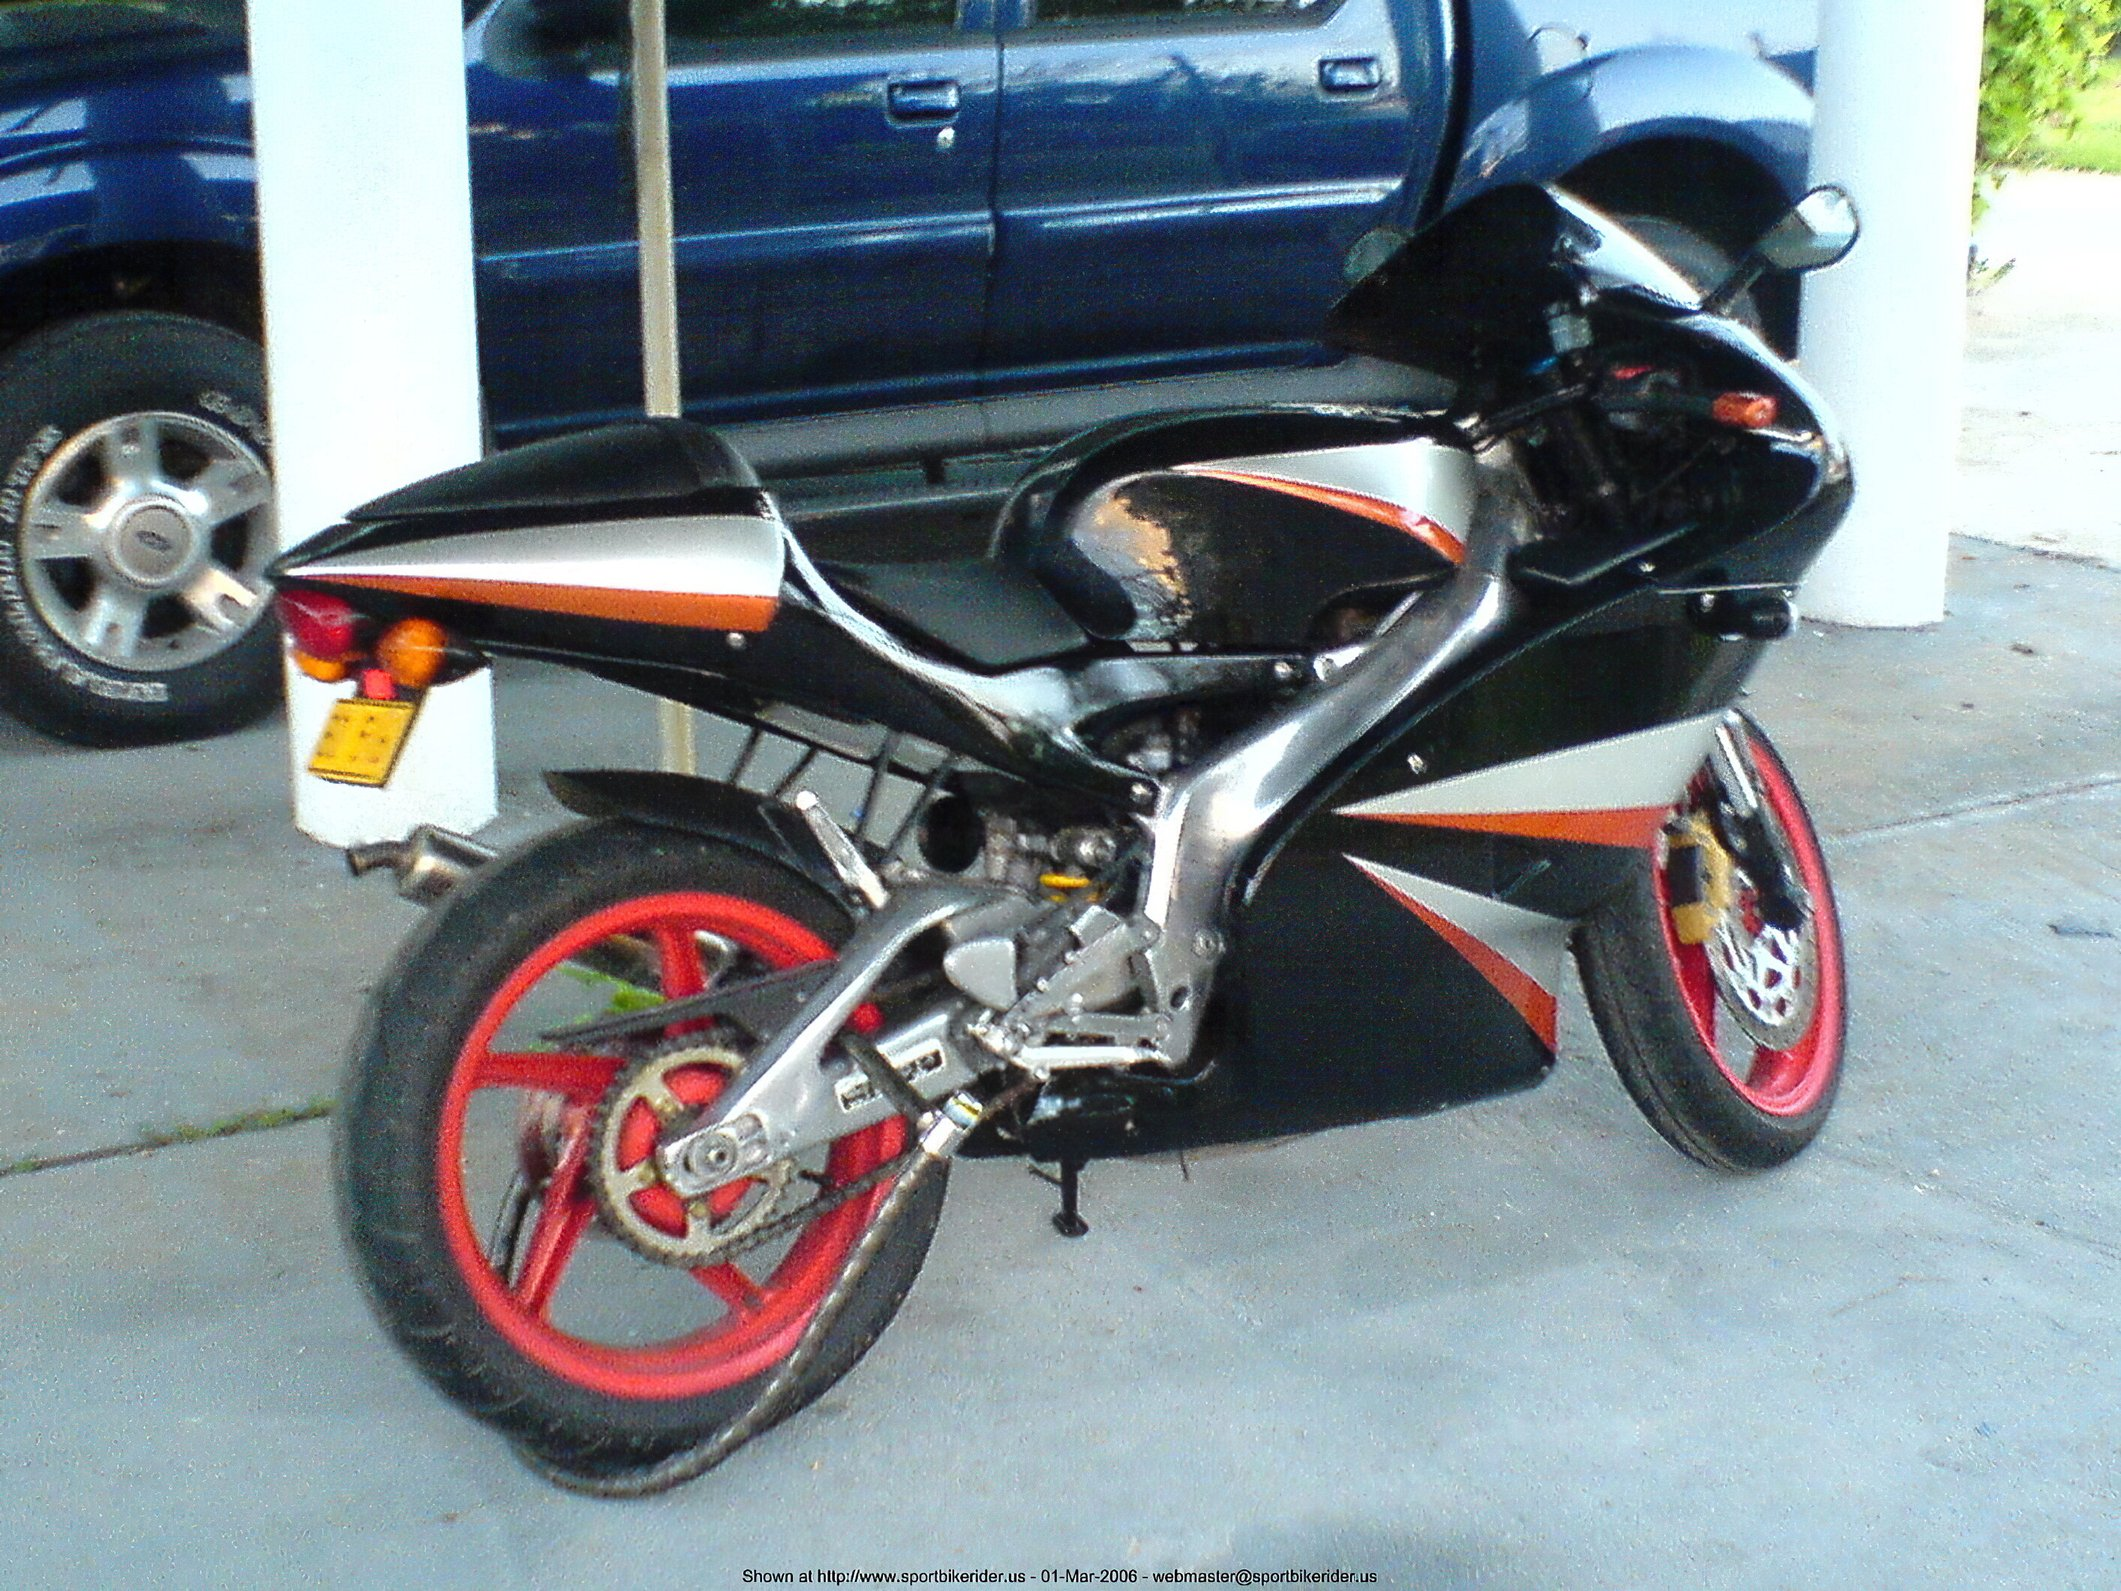 Aprilia RS Models - ID: 97679